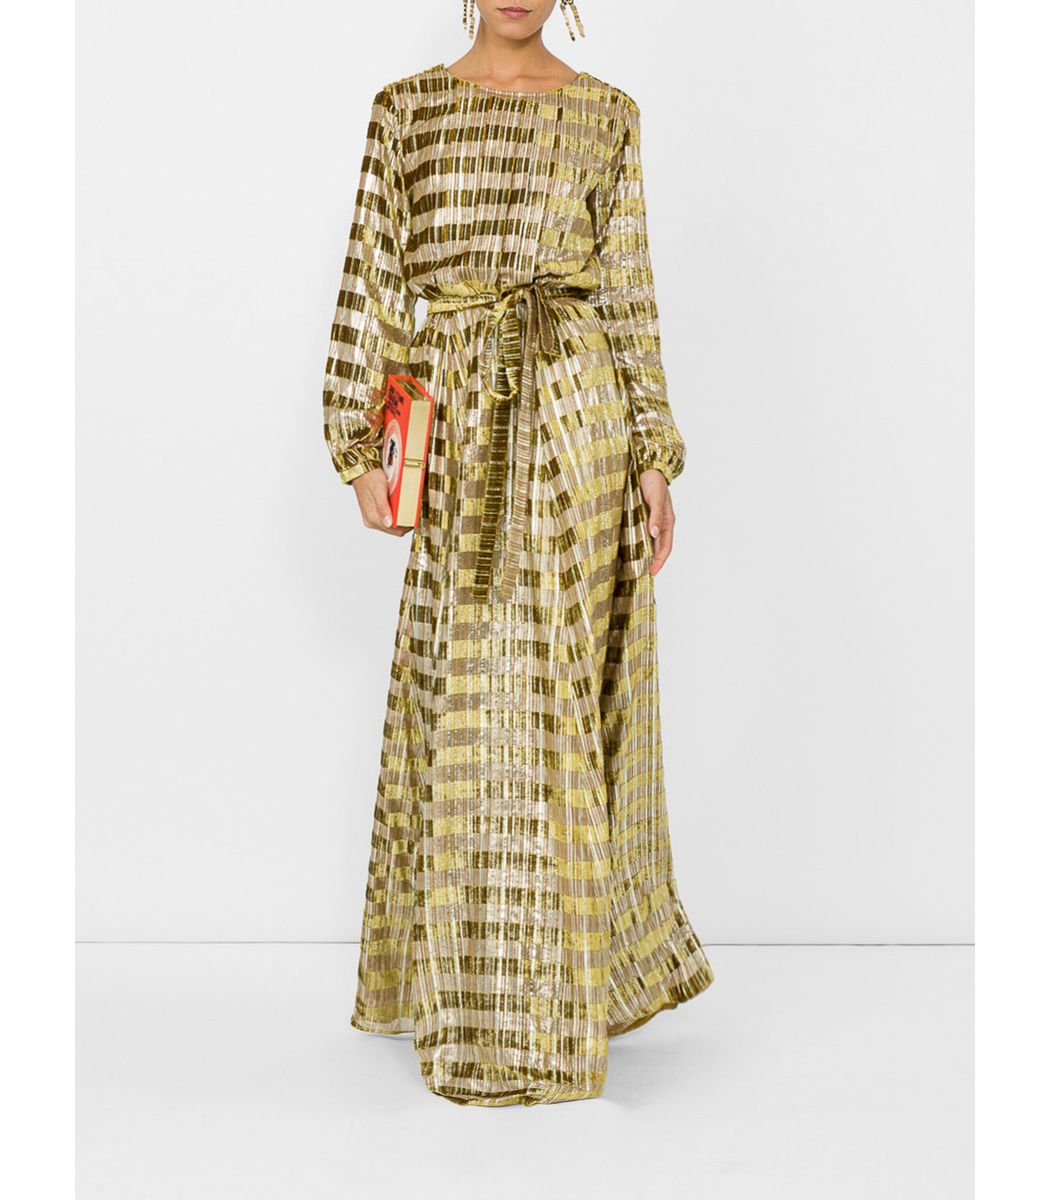 Ines De La Fressange Gold Adele Llong Dress My Style